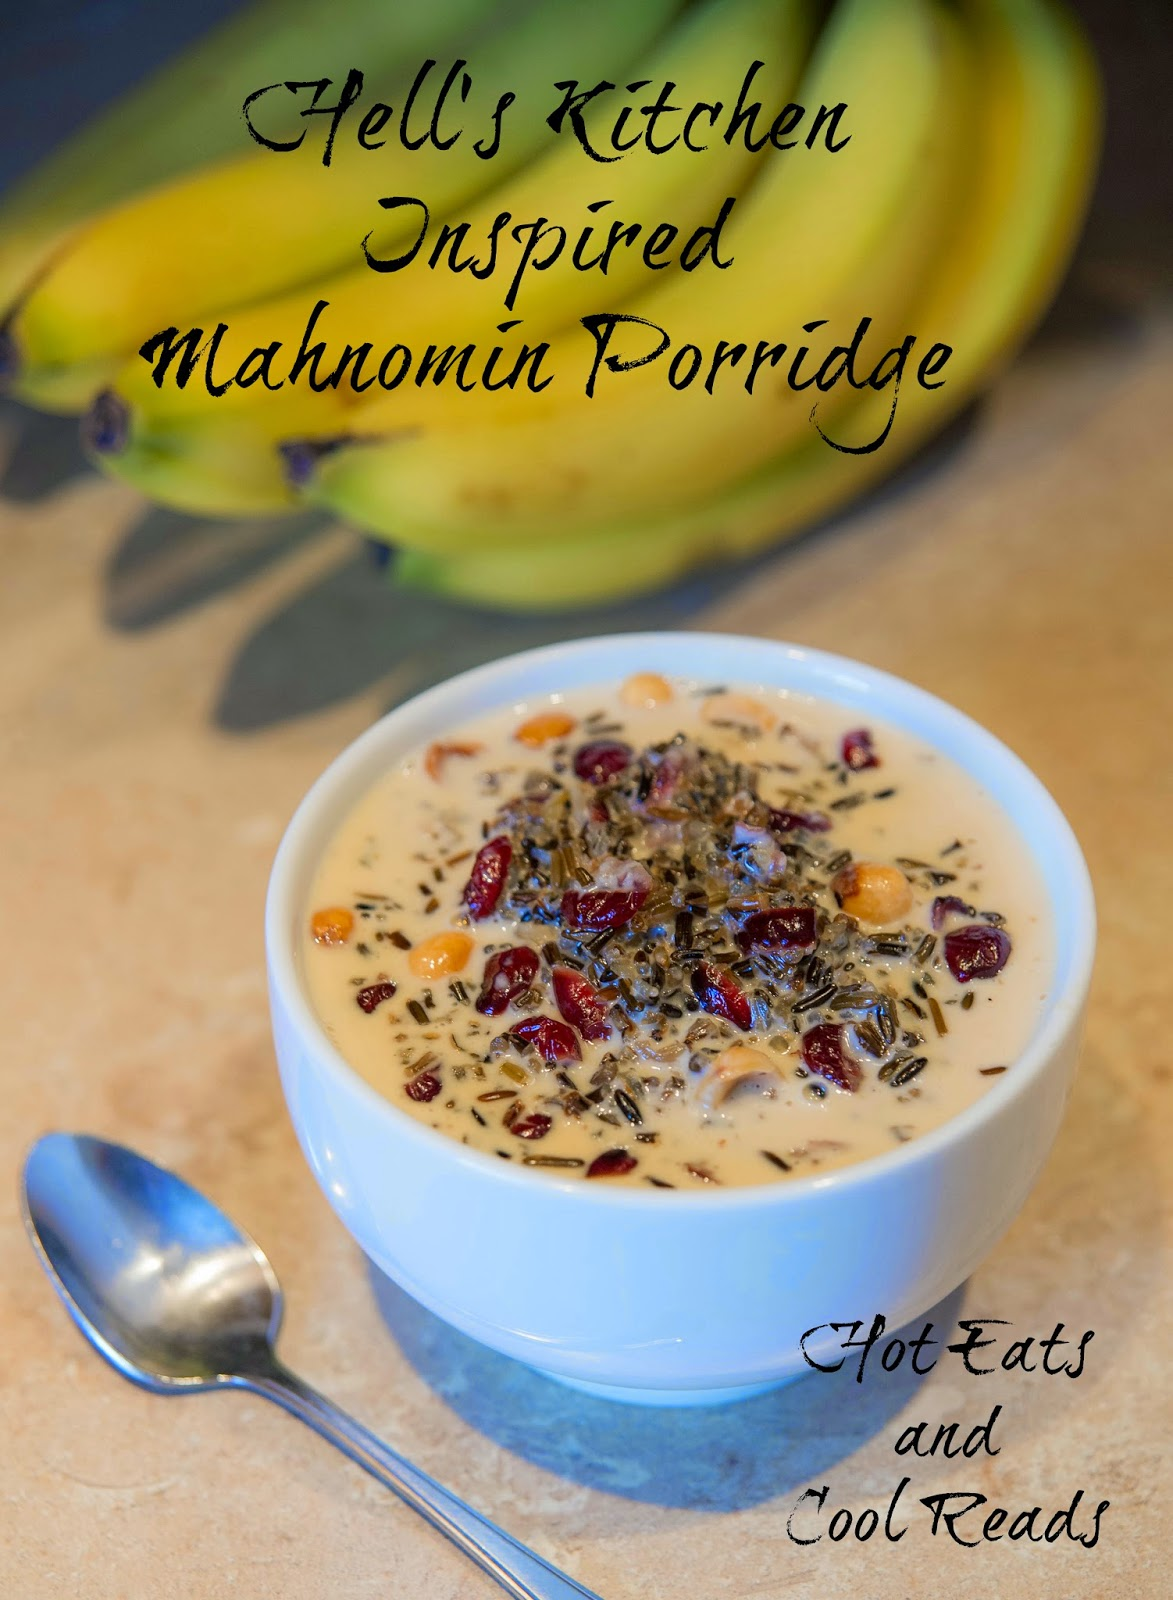 Pure Minnesota comfort food breakfast! Hell's Kitchen Inspired Mahnomin Porridge from Hot Eats and Cool Reads!